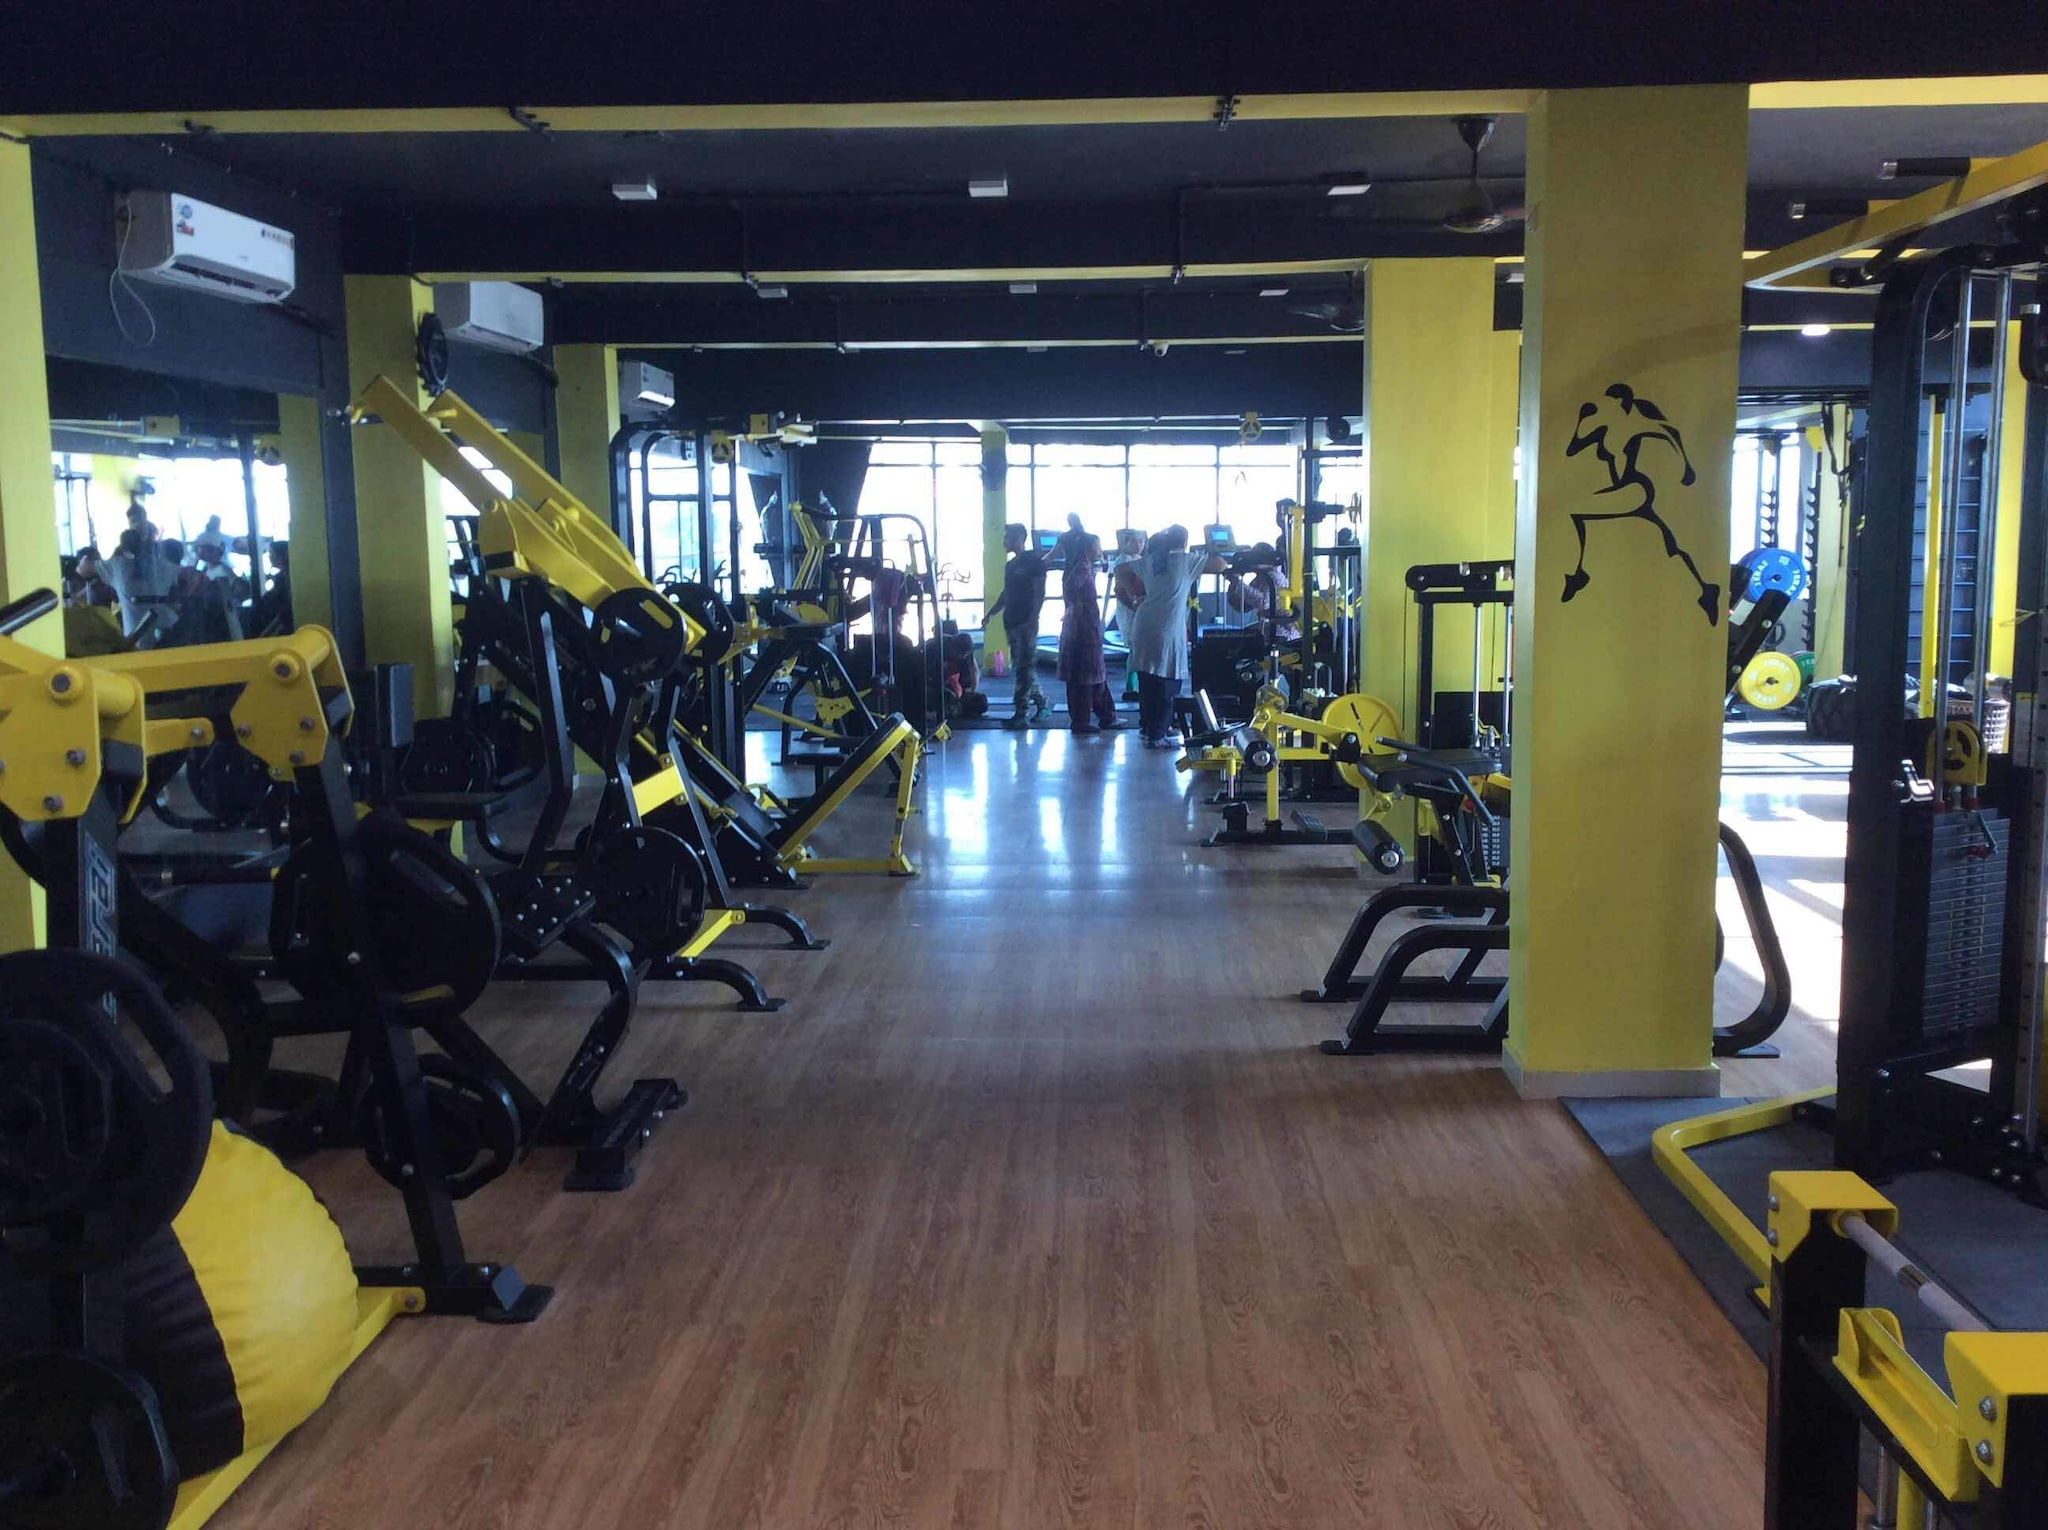 Top gyms in kosamba best body building fitness centres kosamba